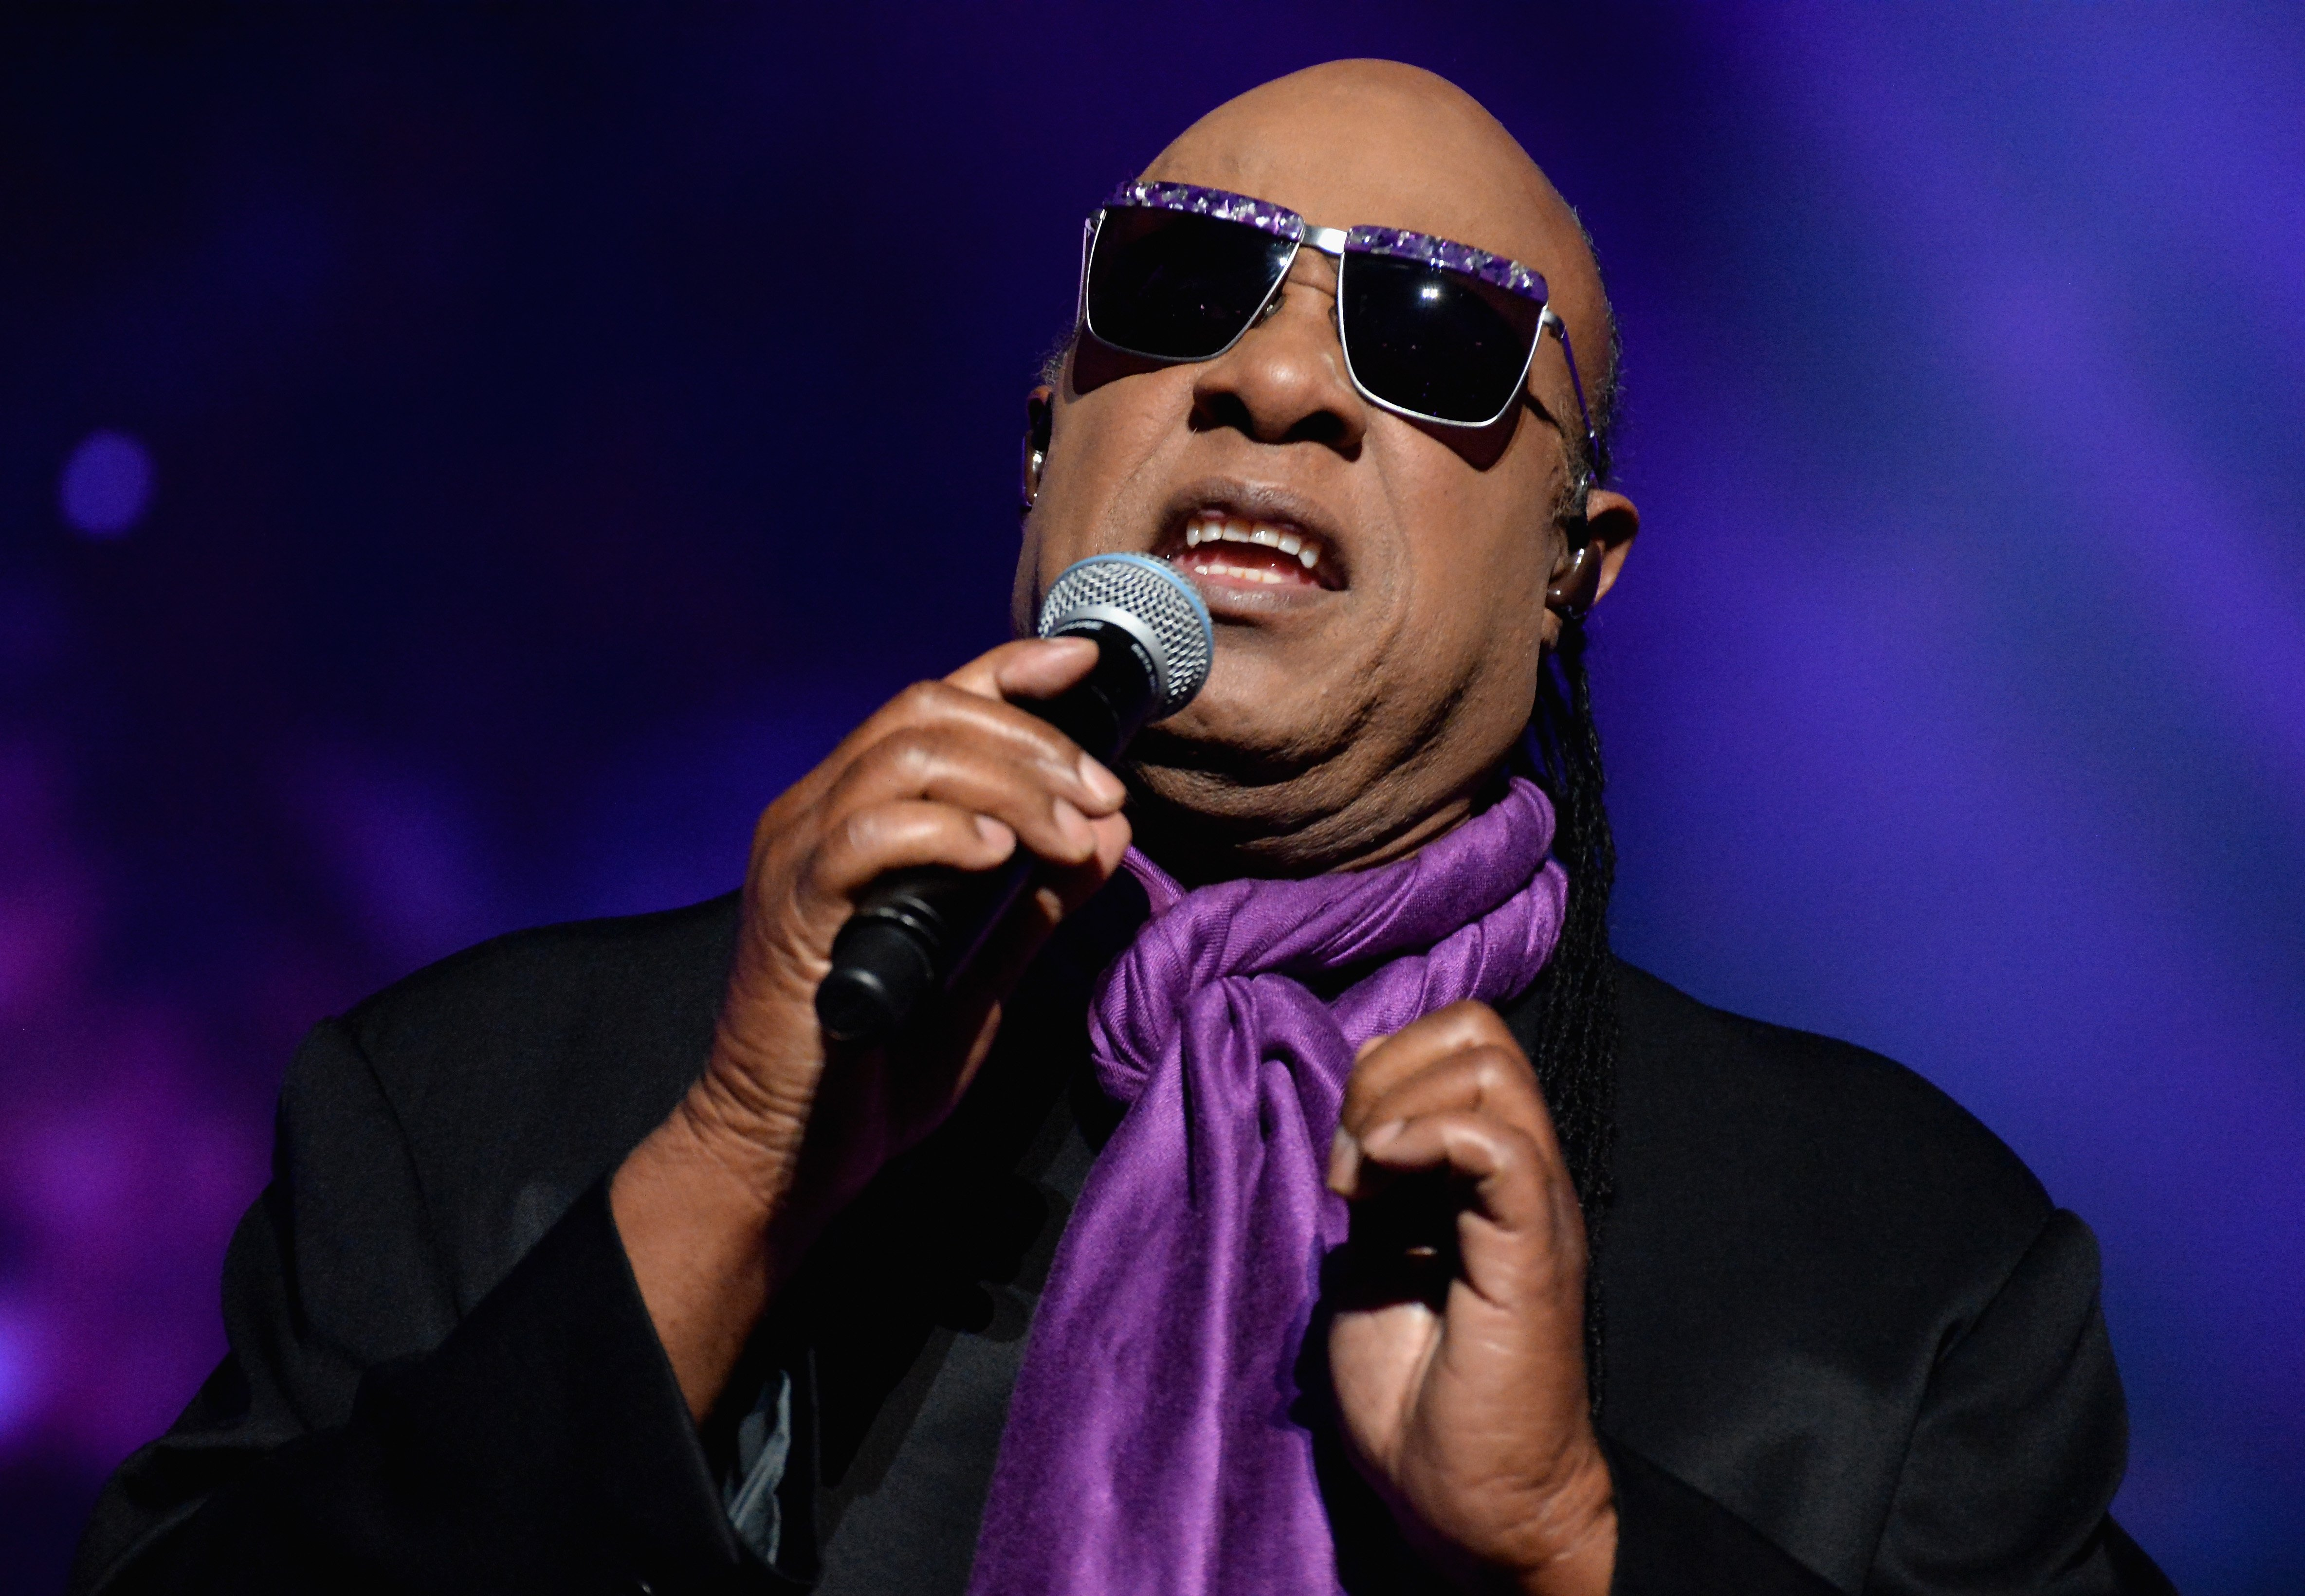 Stevie Wonder performs at the 2016 Billboard Music Awards at T-Mobile Arena on May 22, 2016 in Las Vegas, Nevada.   Source: Getty Images